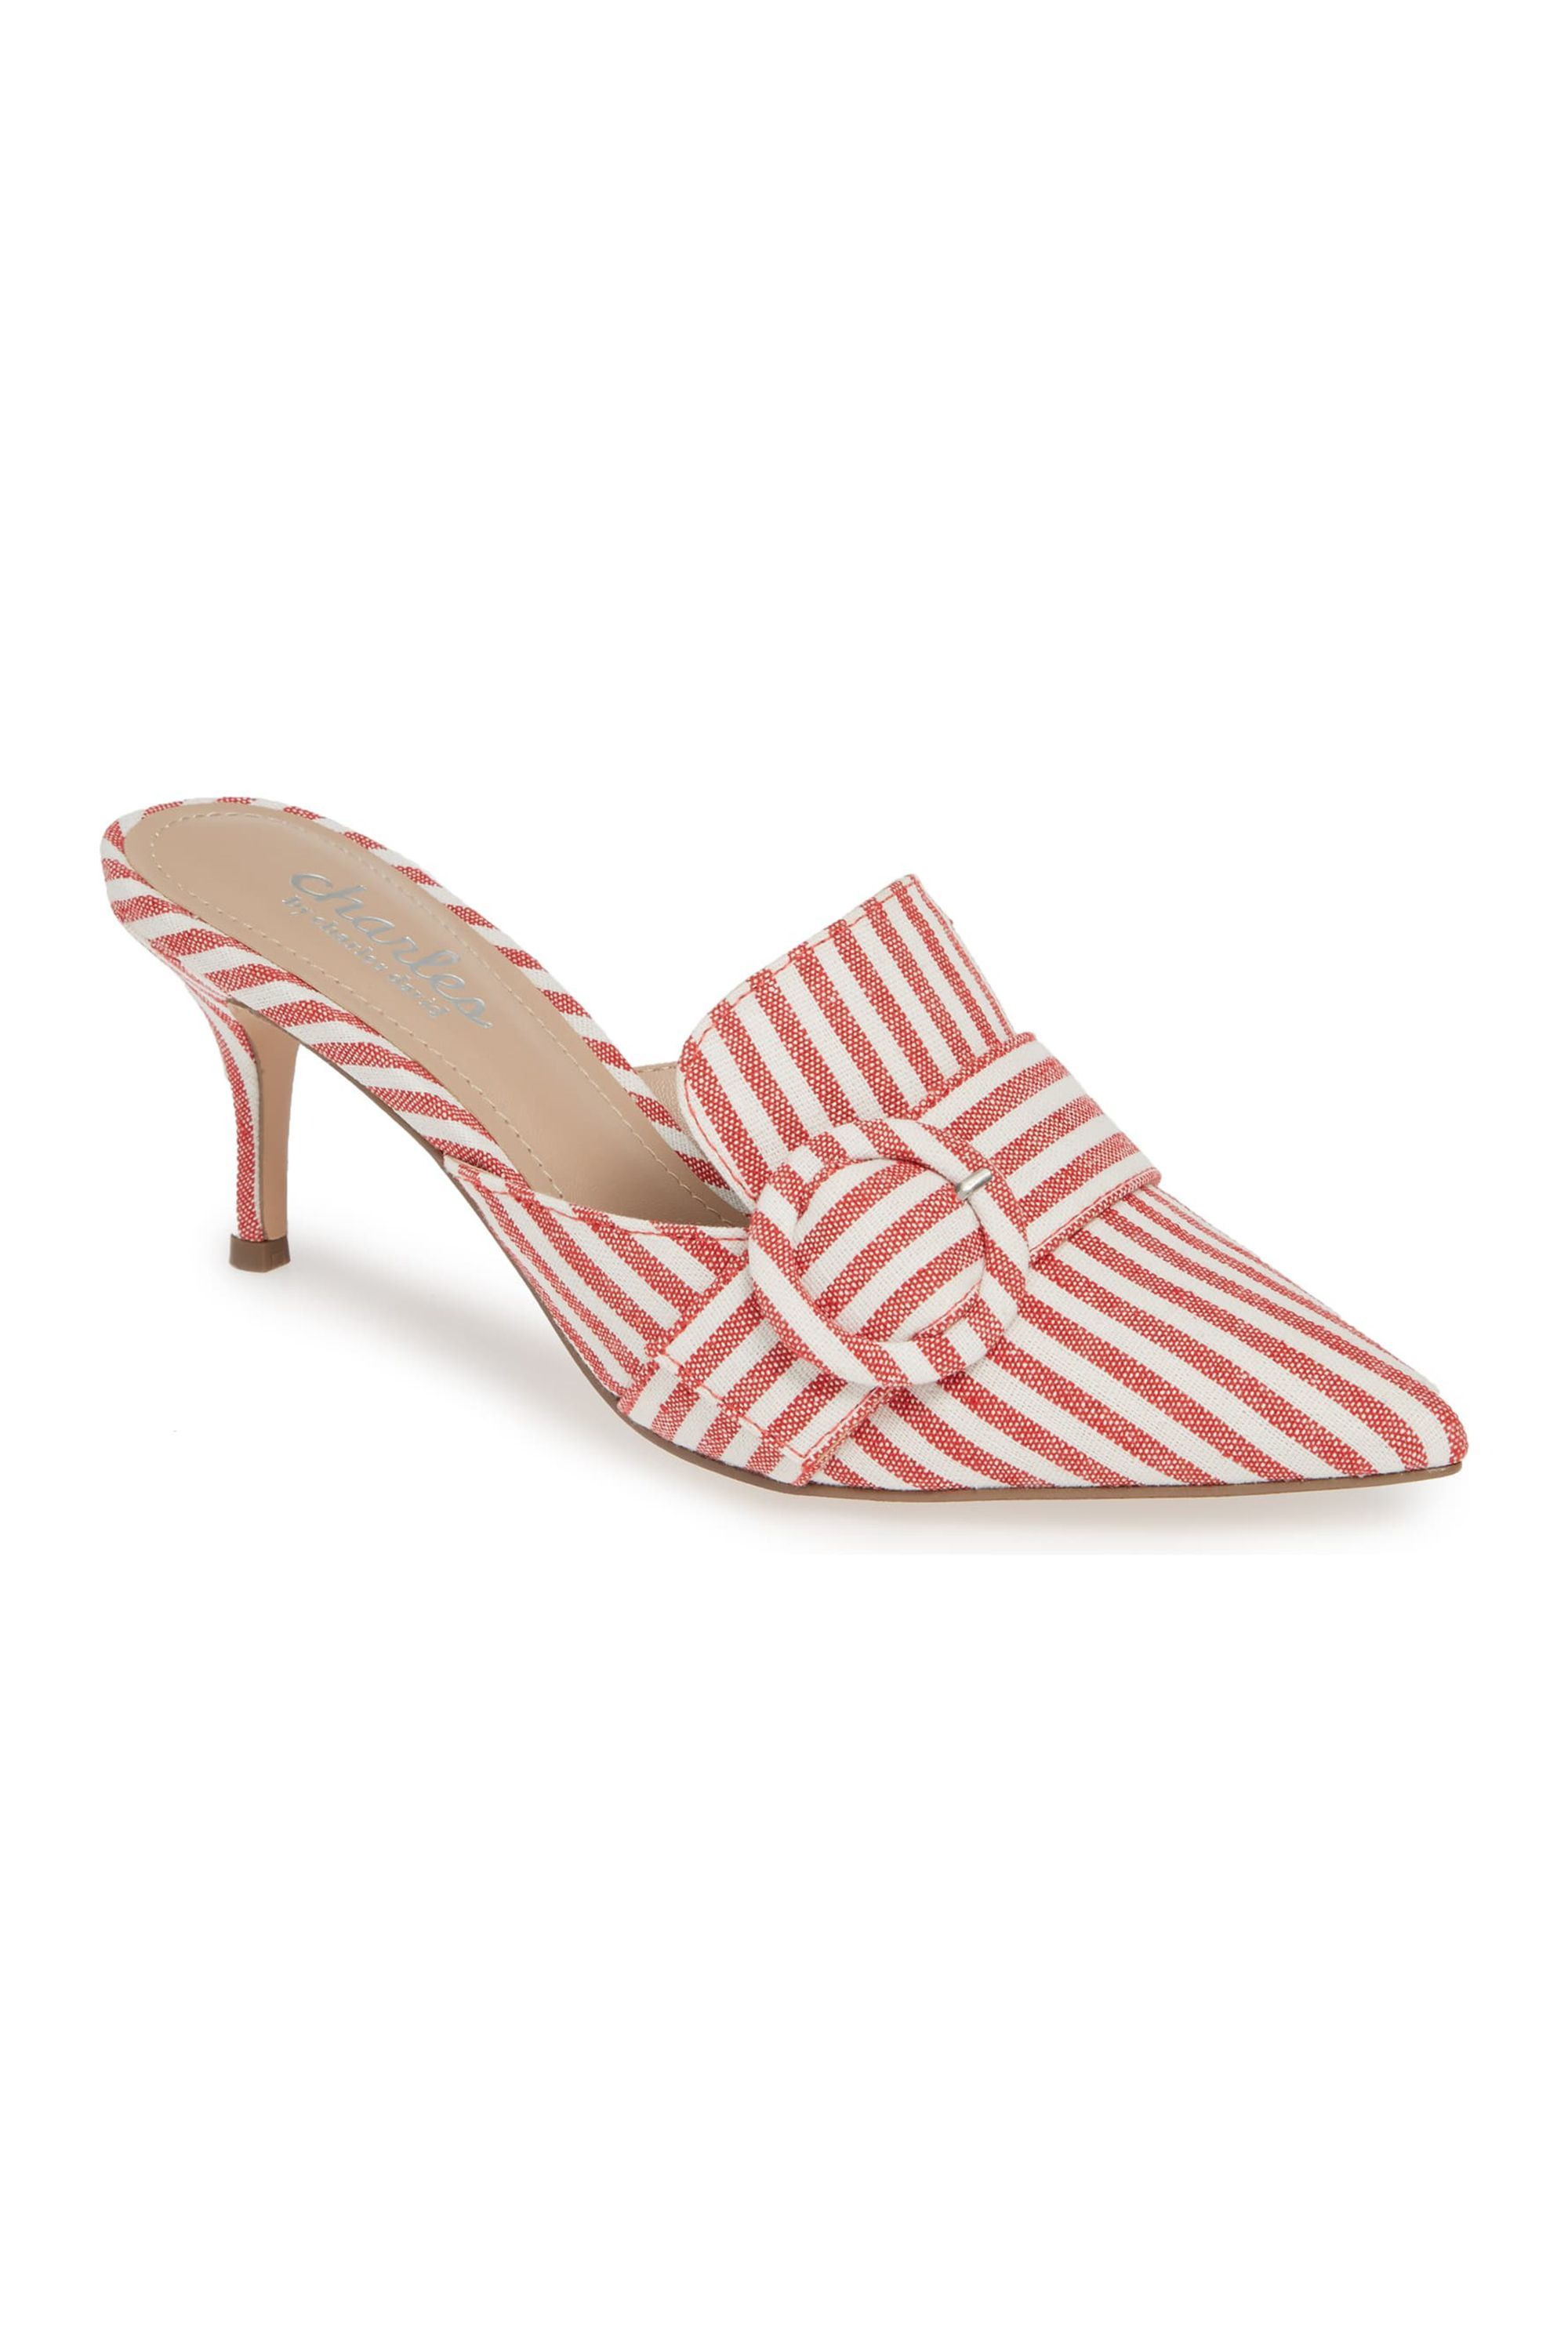 Acapulco Mule Charles by Charles David, $59.96 nordstrom.com SHOP NOW